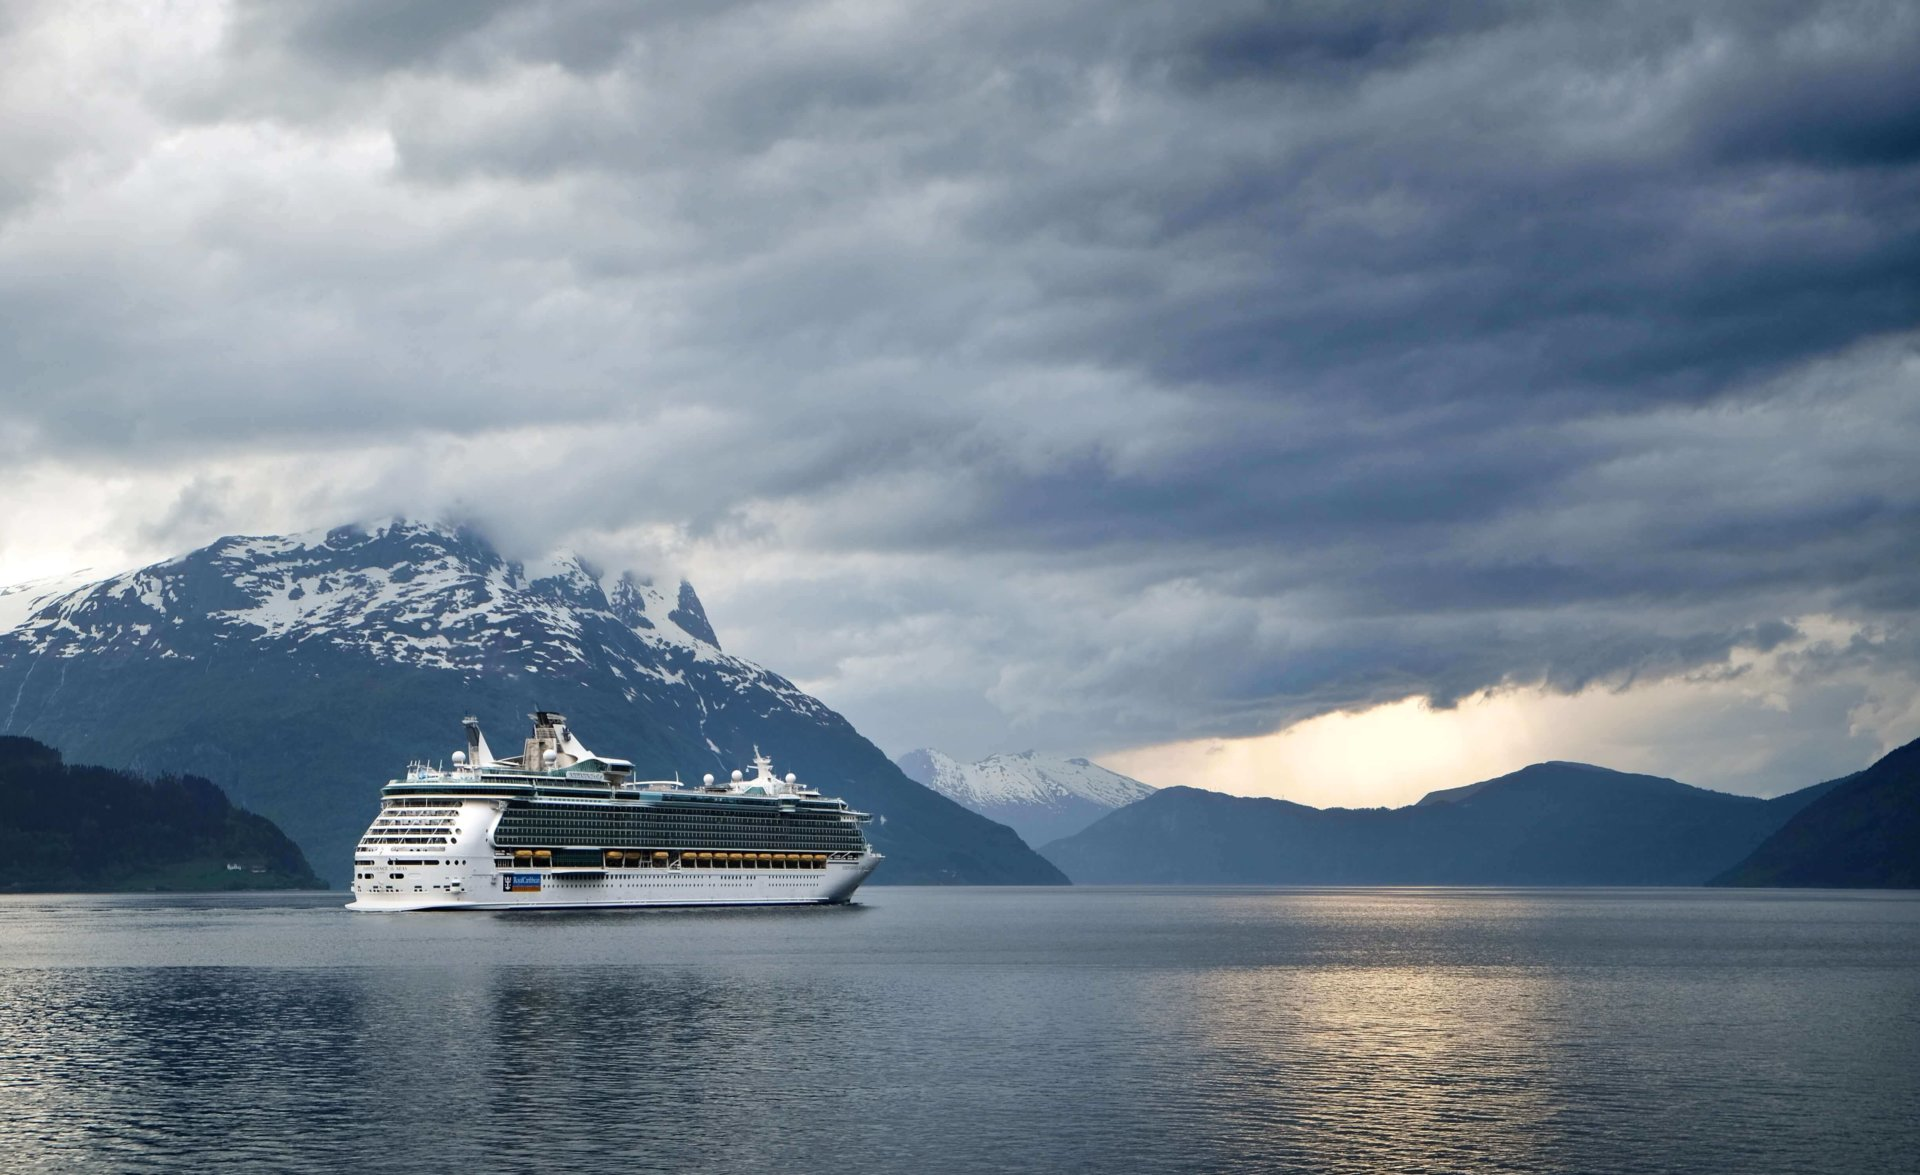 cruise ship on water surrounded by snow-capped mountains